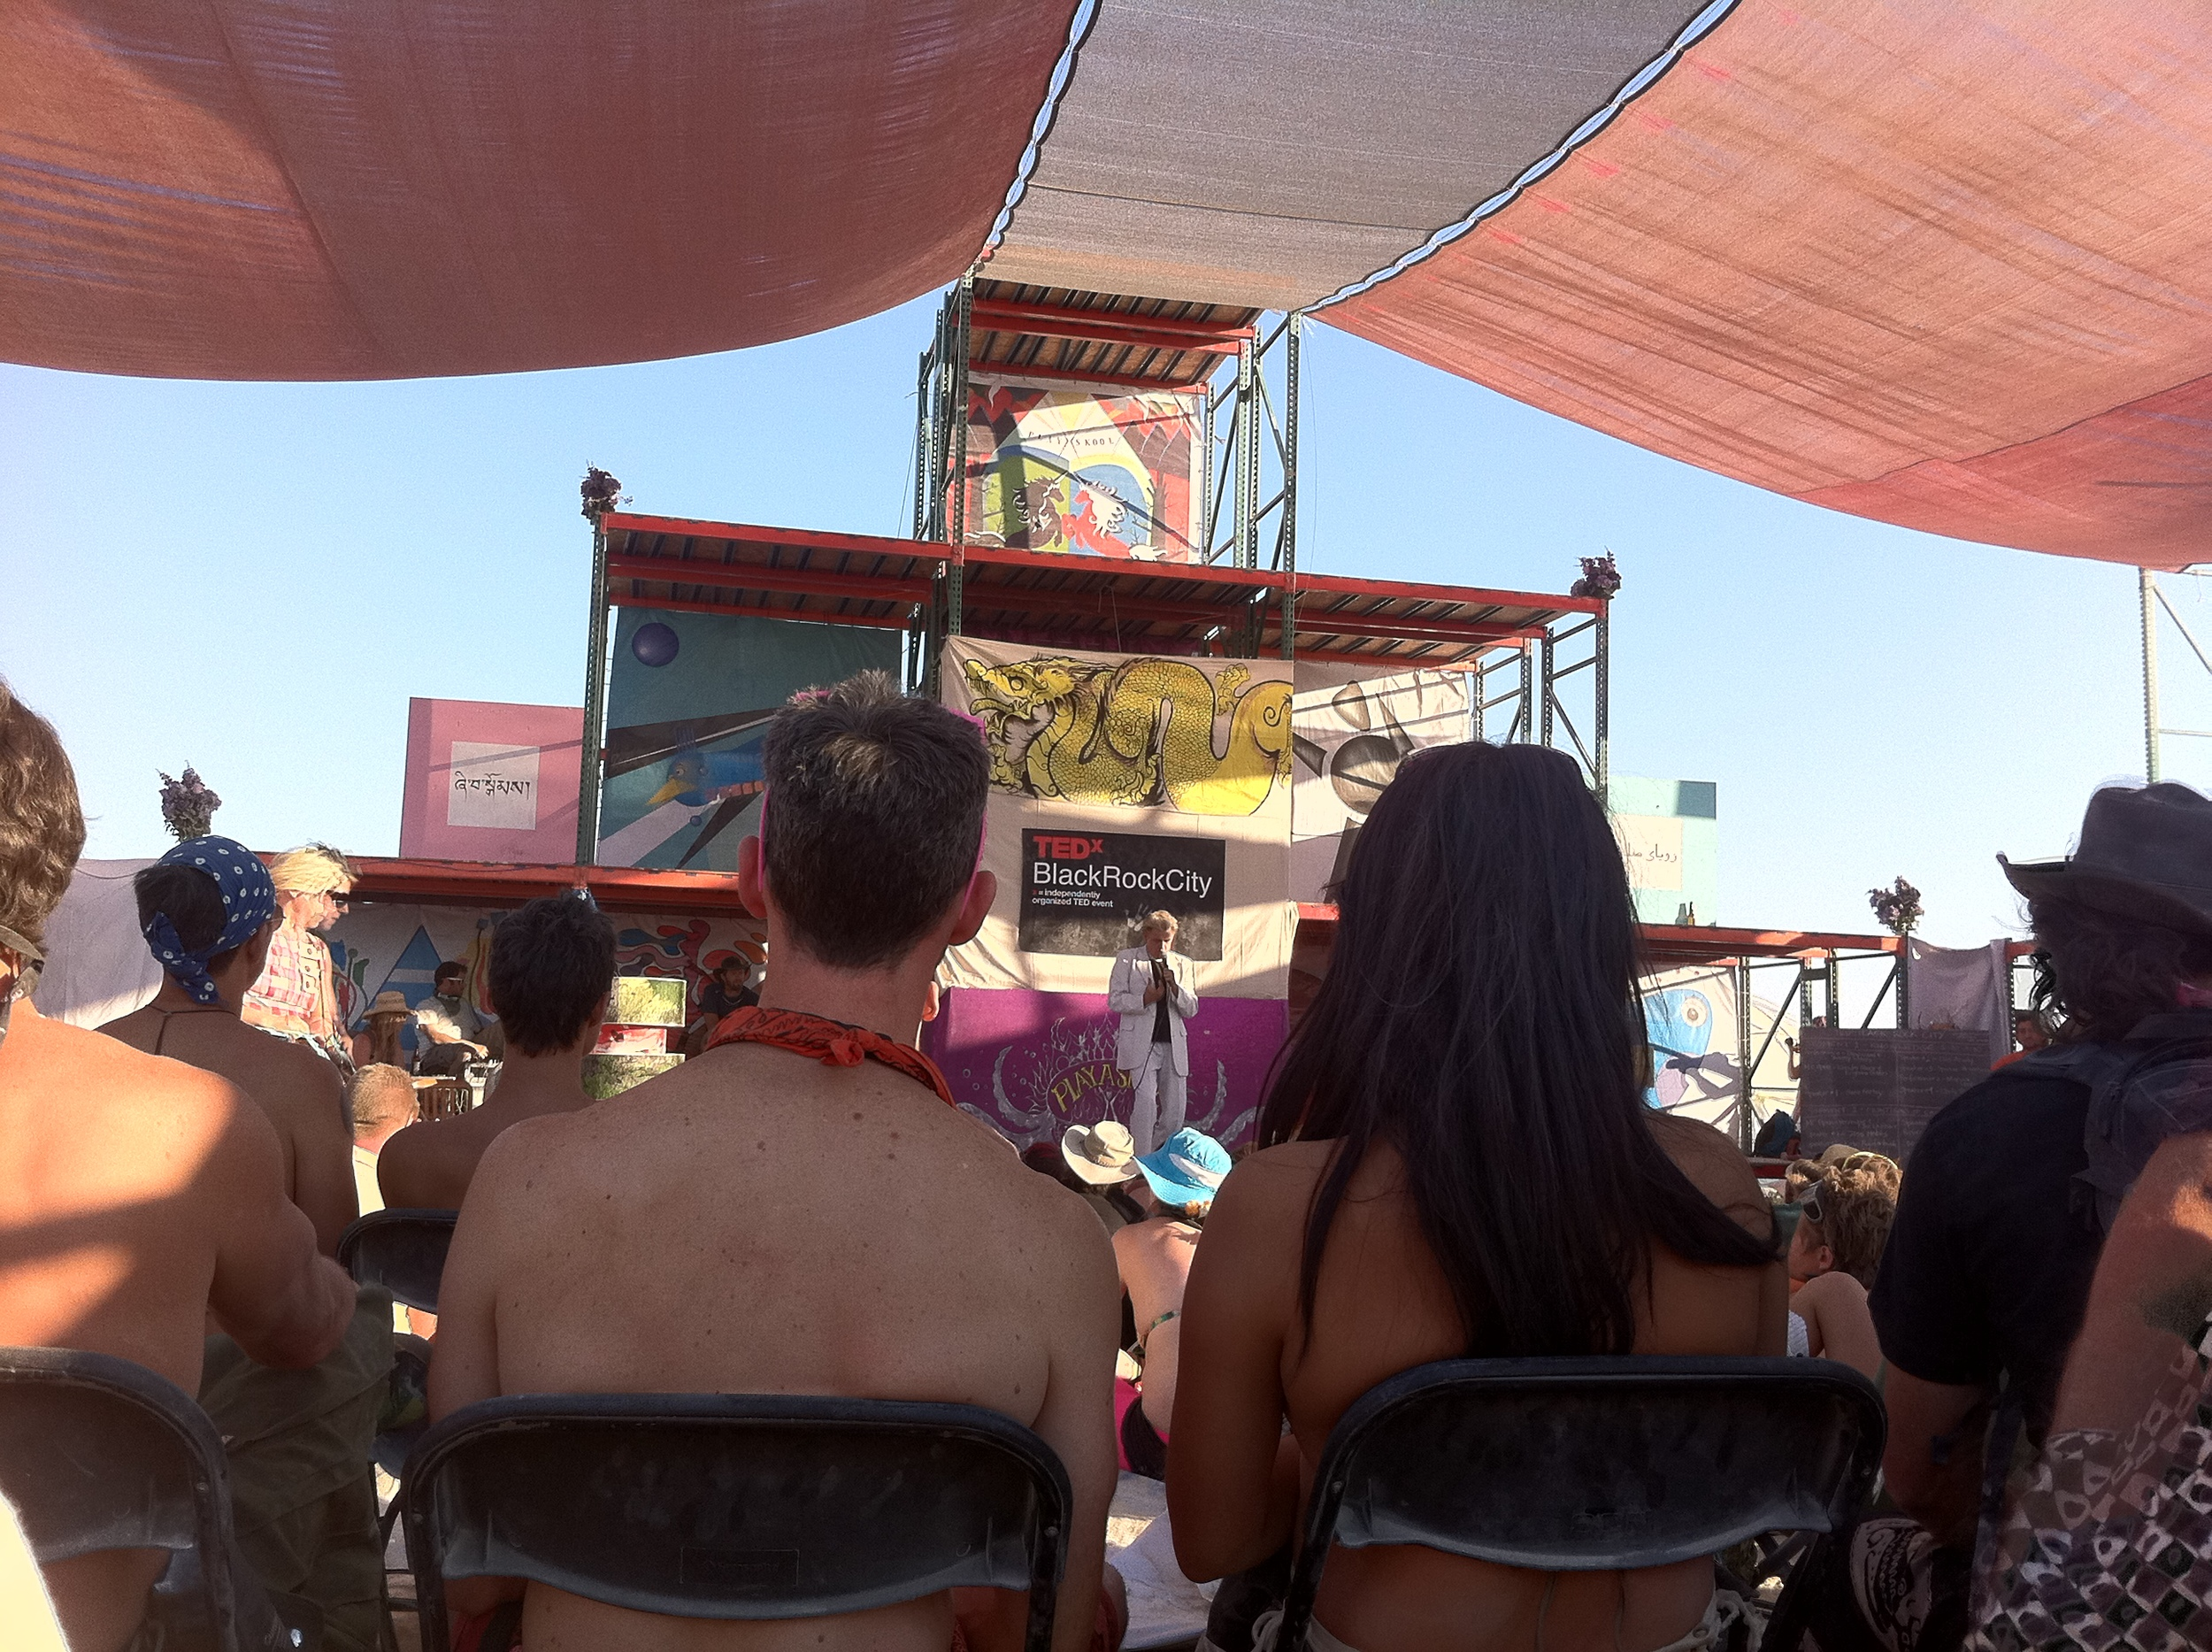 My view at a TEDx talk in the middle of Black Rock City